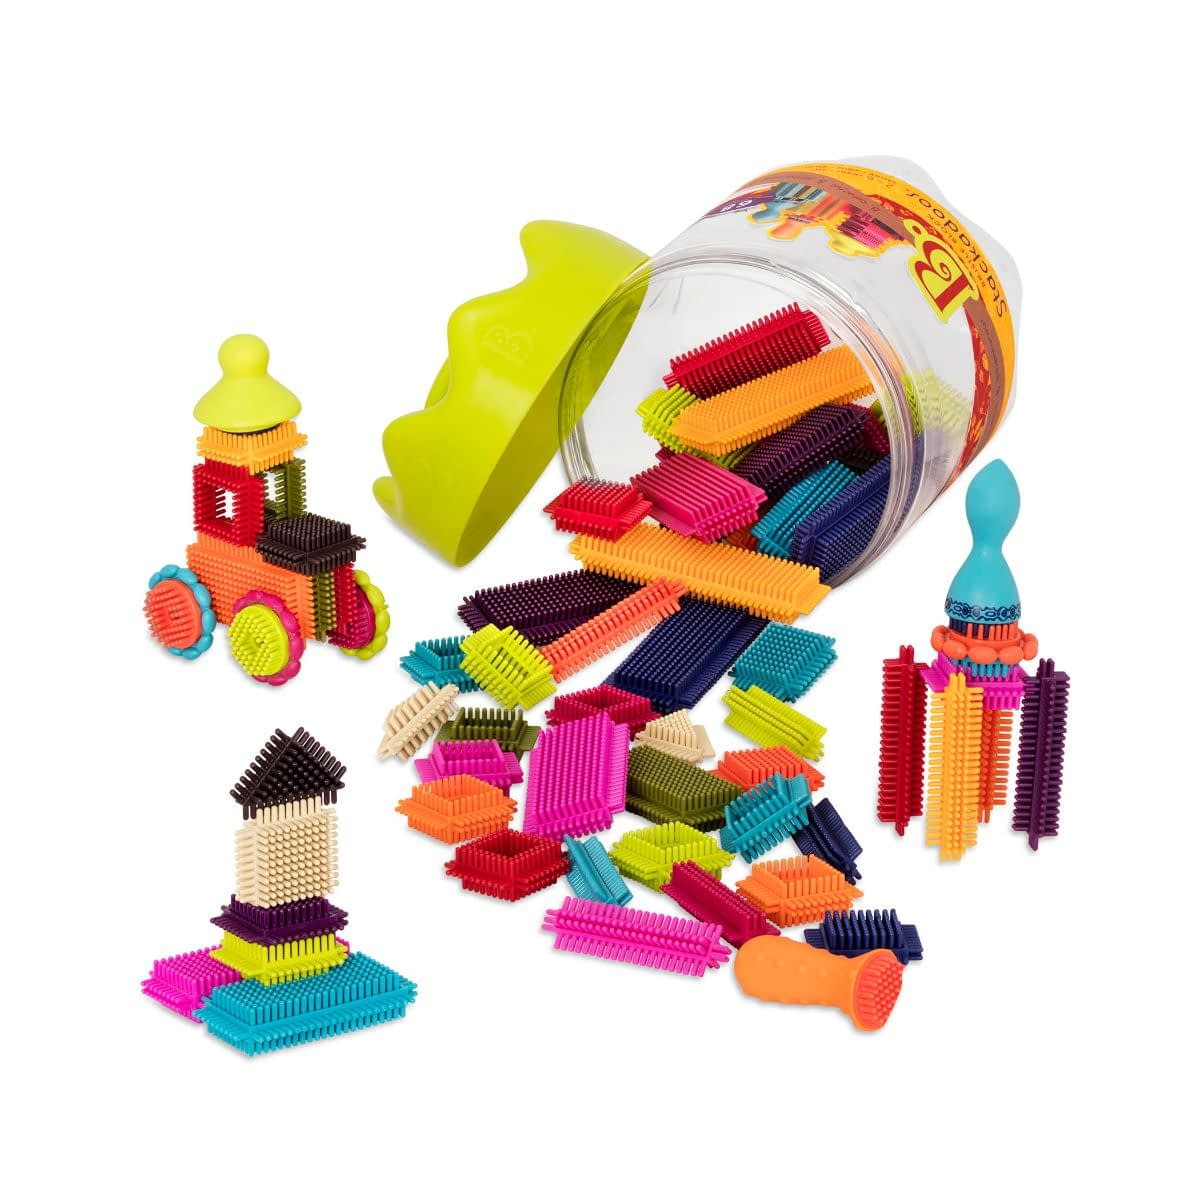 Image of B. toys - Bristle Blocks Stackadoos – STEM Toys for Kids 2 years - Recommended by Child Behavior Clinic